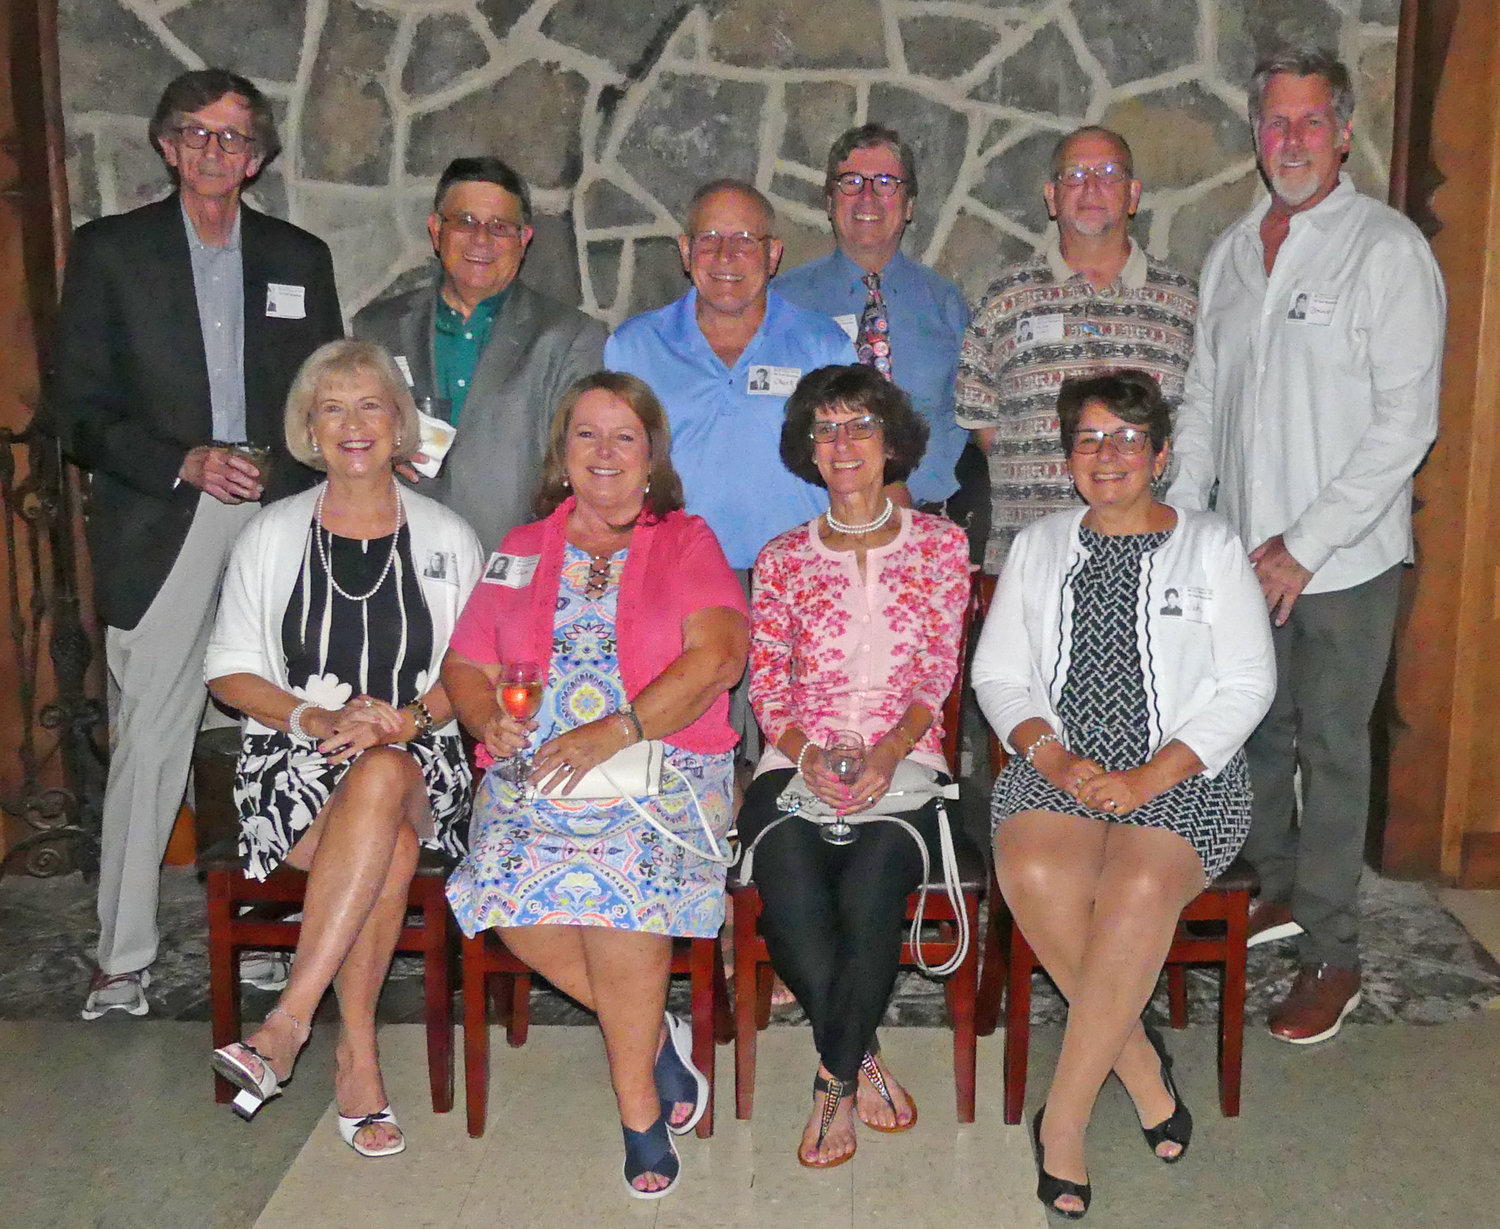 CATCHING UP — The Rome Catholic High School Class of 1969 gathered on Saturday, Aug. 10, at the Teugega Country Club for a dinner to share old times and also catch up on the past 50 years.  Among those attending the celebration were, from left, front row: Betsy Barry Knapp, Smithfield, Va.; Jean Laverick Vaccaro, Chula Vista, Calif.; Denise Cataldo Giardino; and Judith Quattro Mullin; back row: John Sturbin, Fort Worth, Texas; Daniel Vaccaro; Donald Raymond, Saratoga Springs; Robert Zeimann, Leander, Texas; Michael Cary, Ogdensburg; and Bruce Berglund, Costa Mesa, Calif.